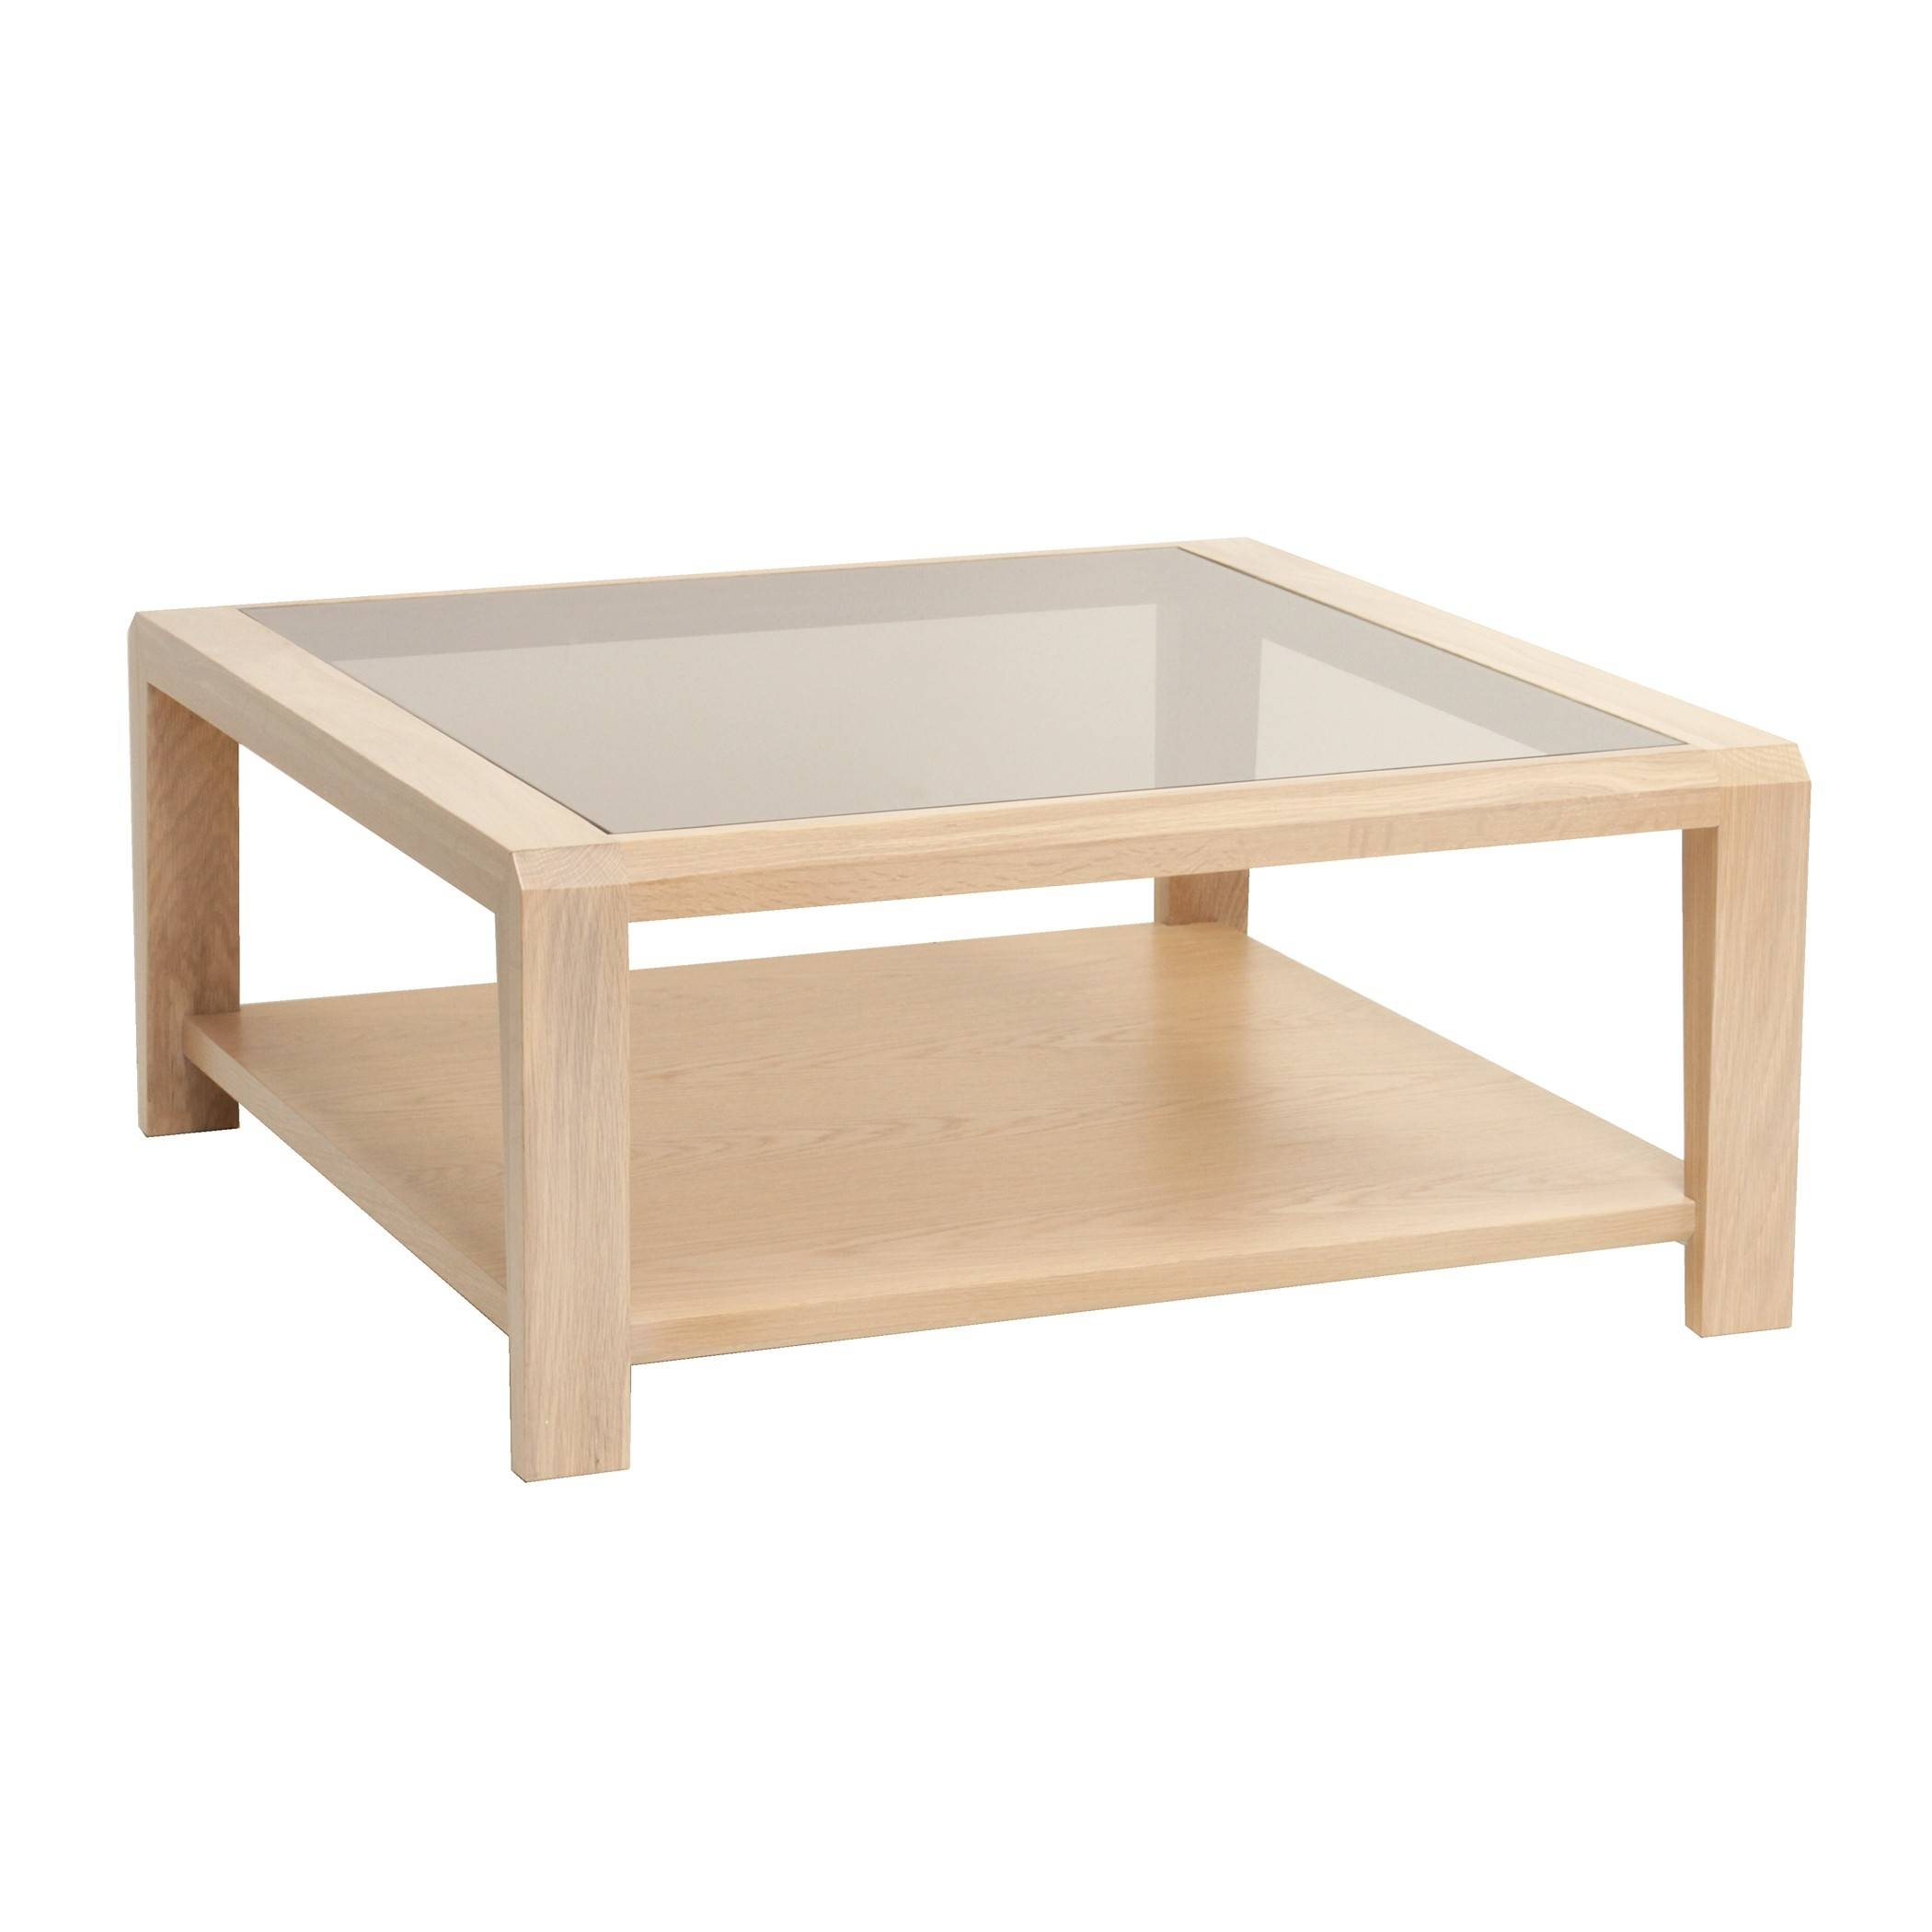 Square Oak Coffee Table With Glass Top | Coffee Tables Decoration with Oak Square Coffee Tables (Image 29 of 30)